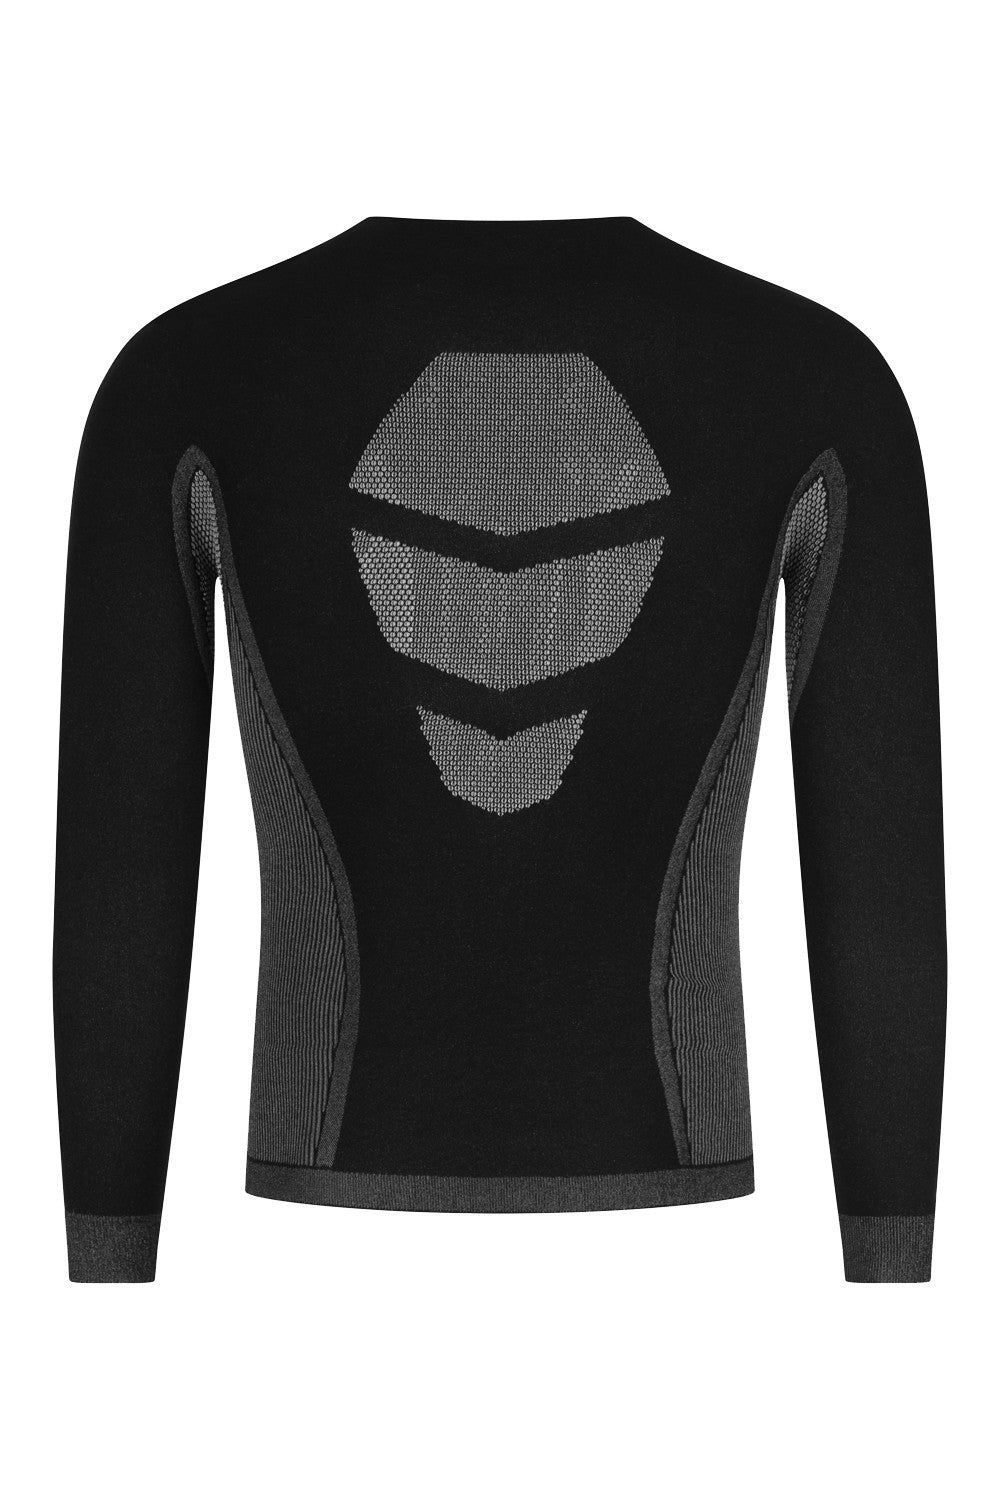 mens-drynamo-cycle-long-sleeve-base-layer-sheer-black